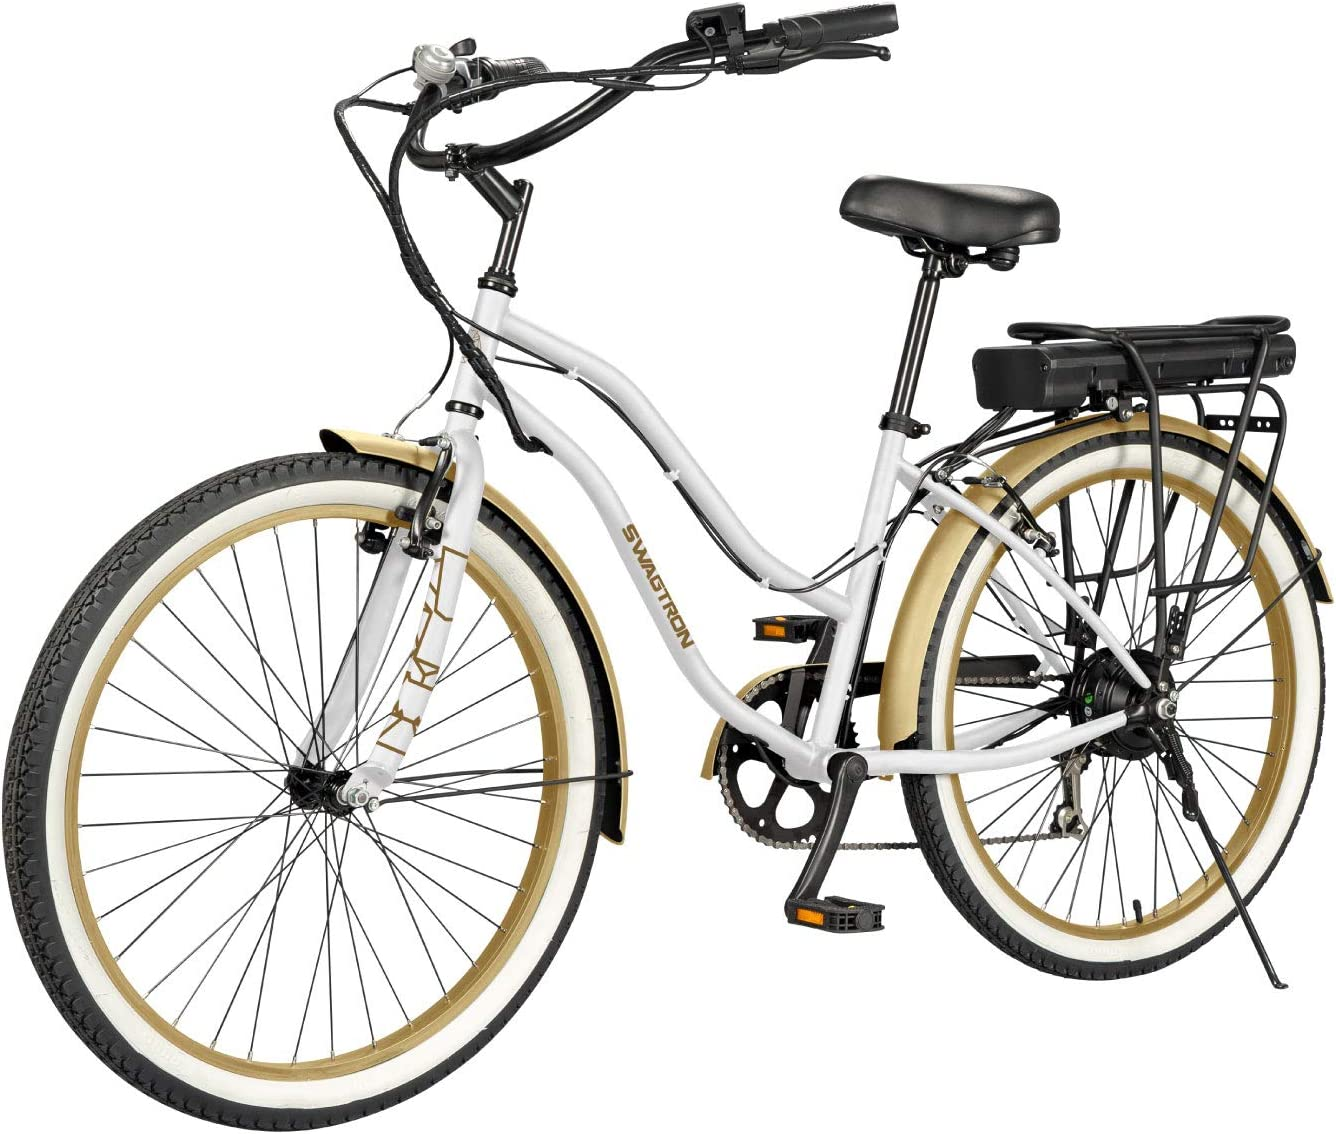 Swagtron EB10 electric bicycle